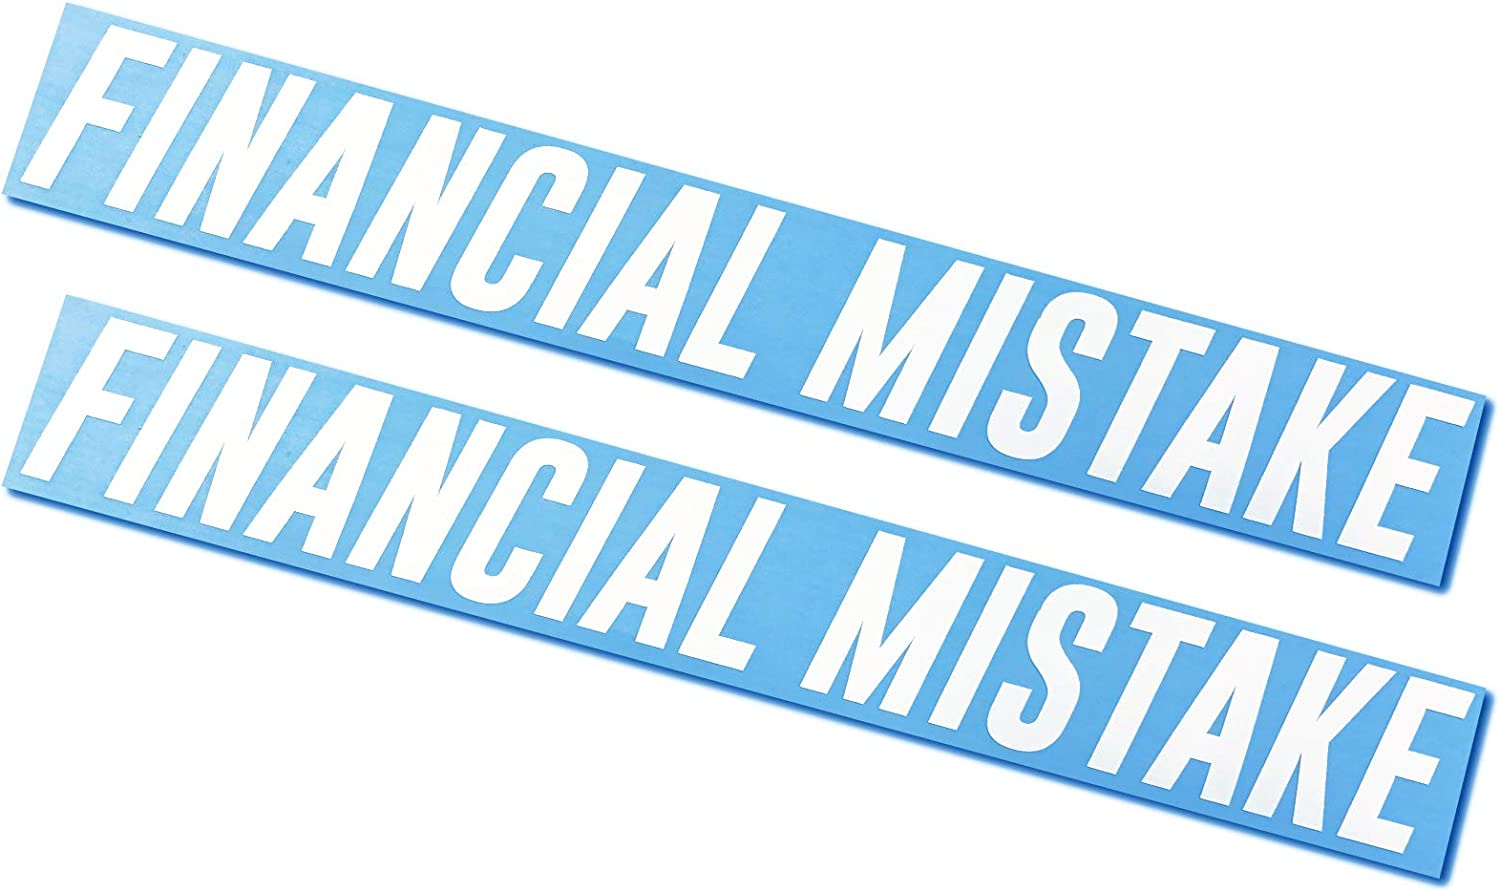 Financial Mistake Decals//Stickers 1.5x12 2 Pack